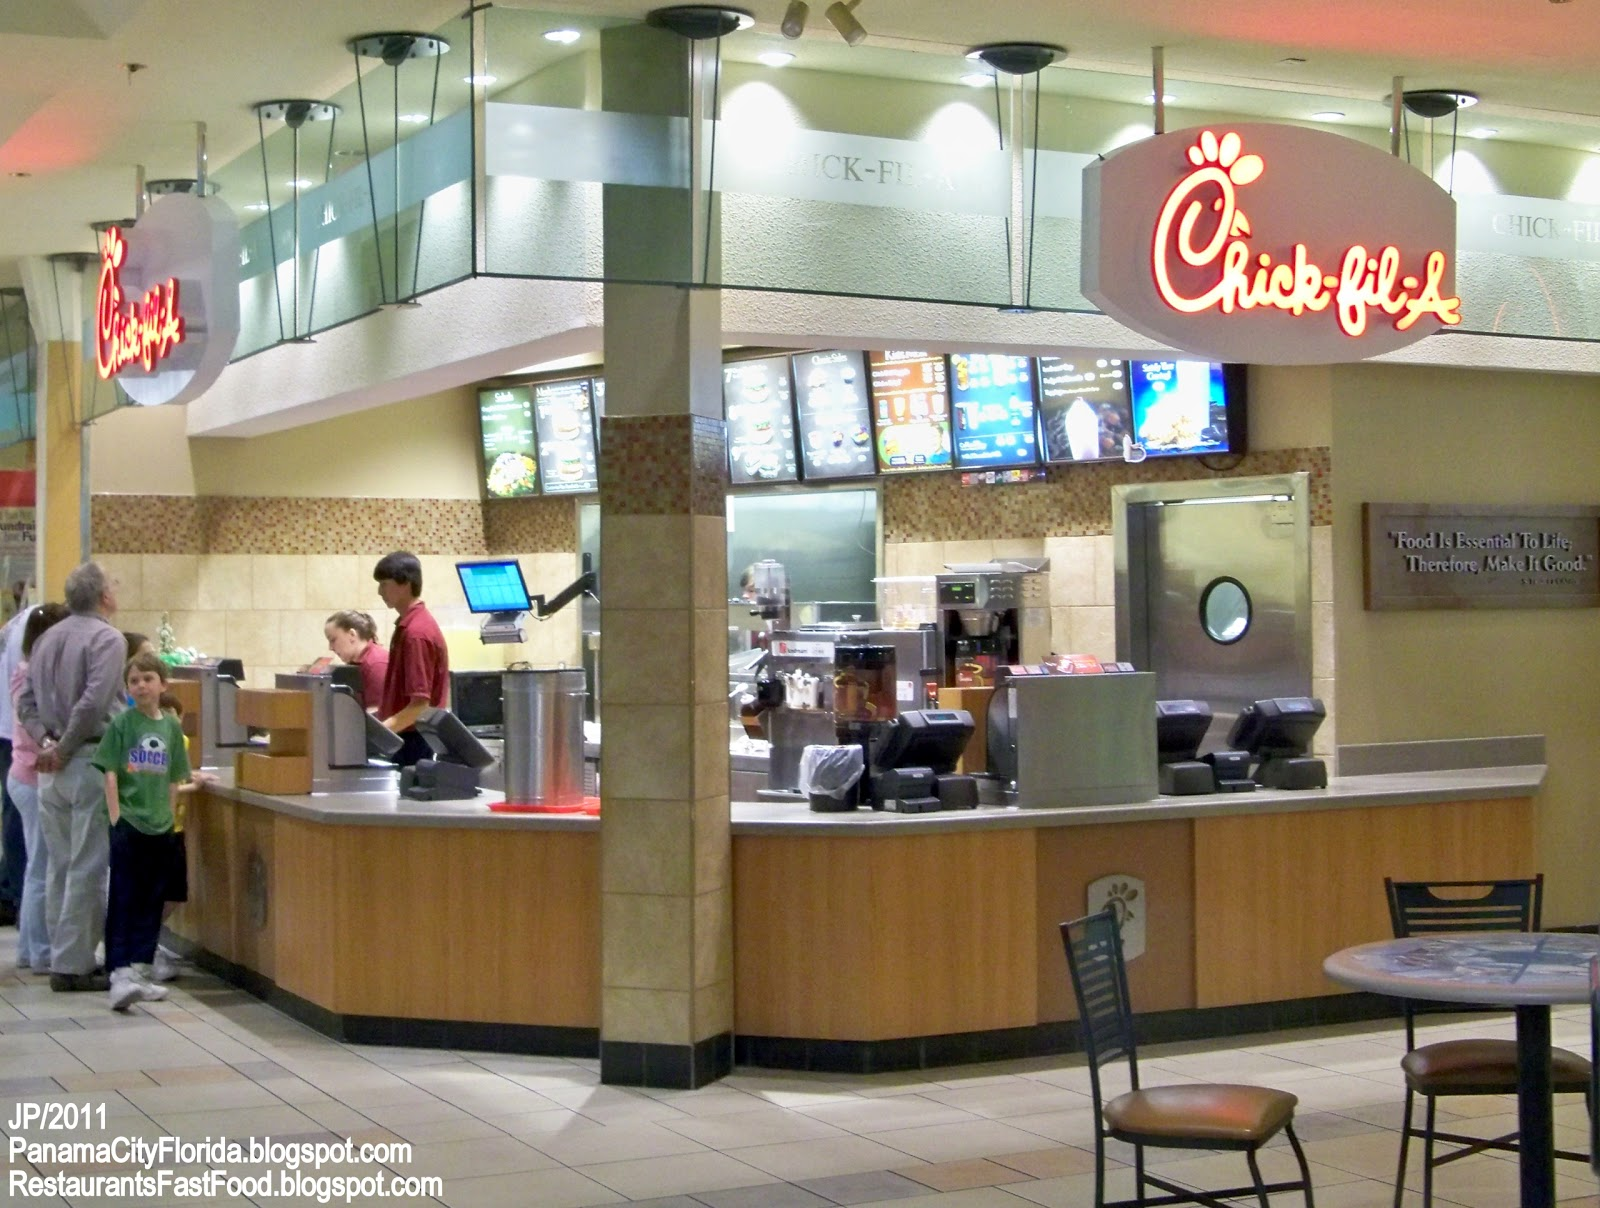 Chick fil A corporate office listing. Find information on Chick fil A headquarters such as corporate phone number, address, website, and consumer reviews.